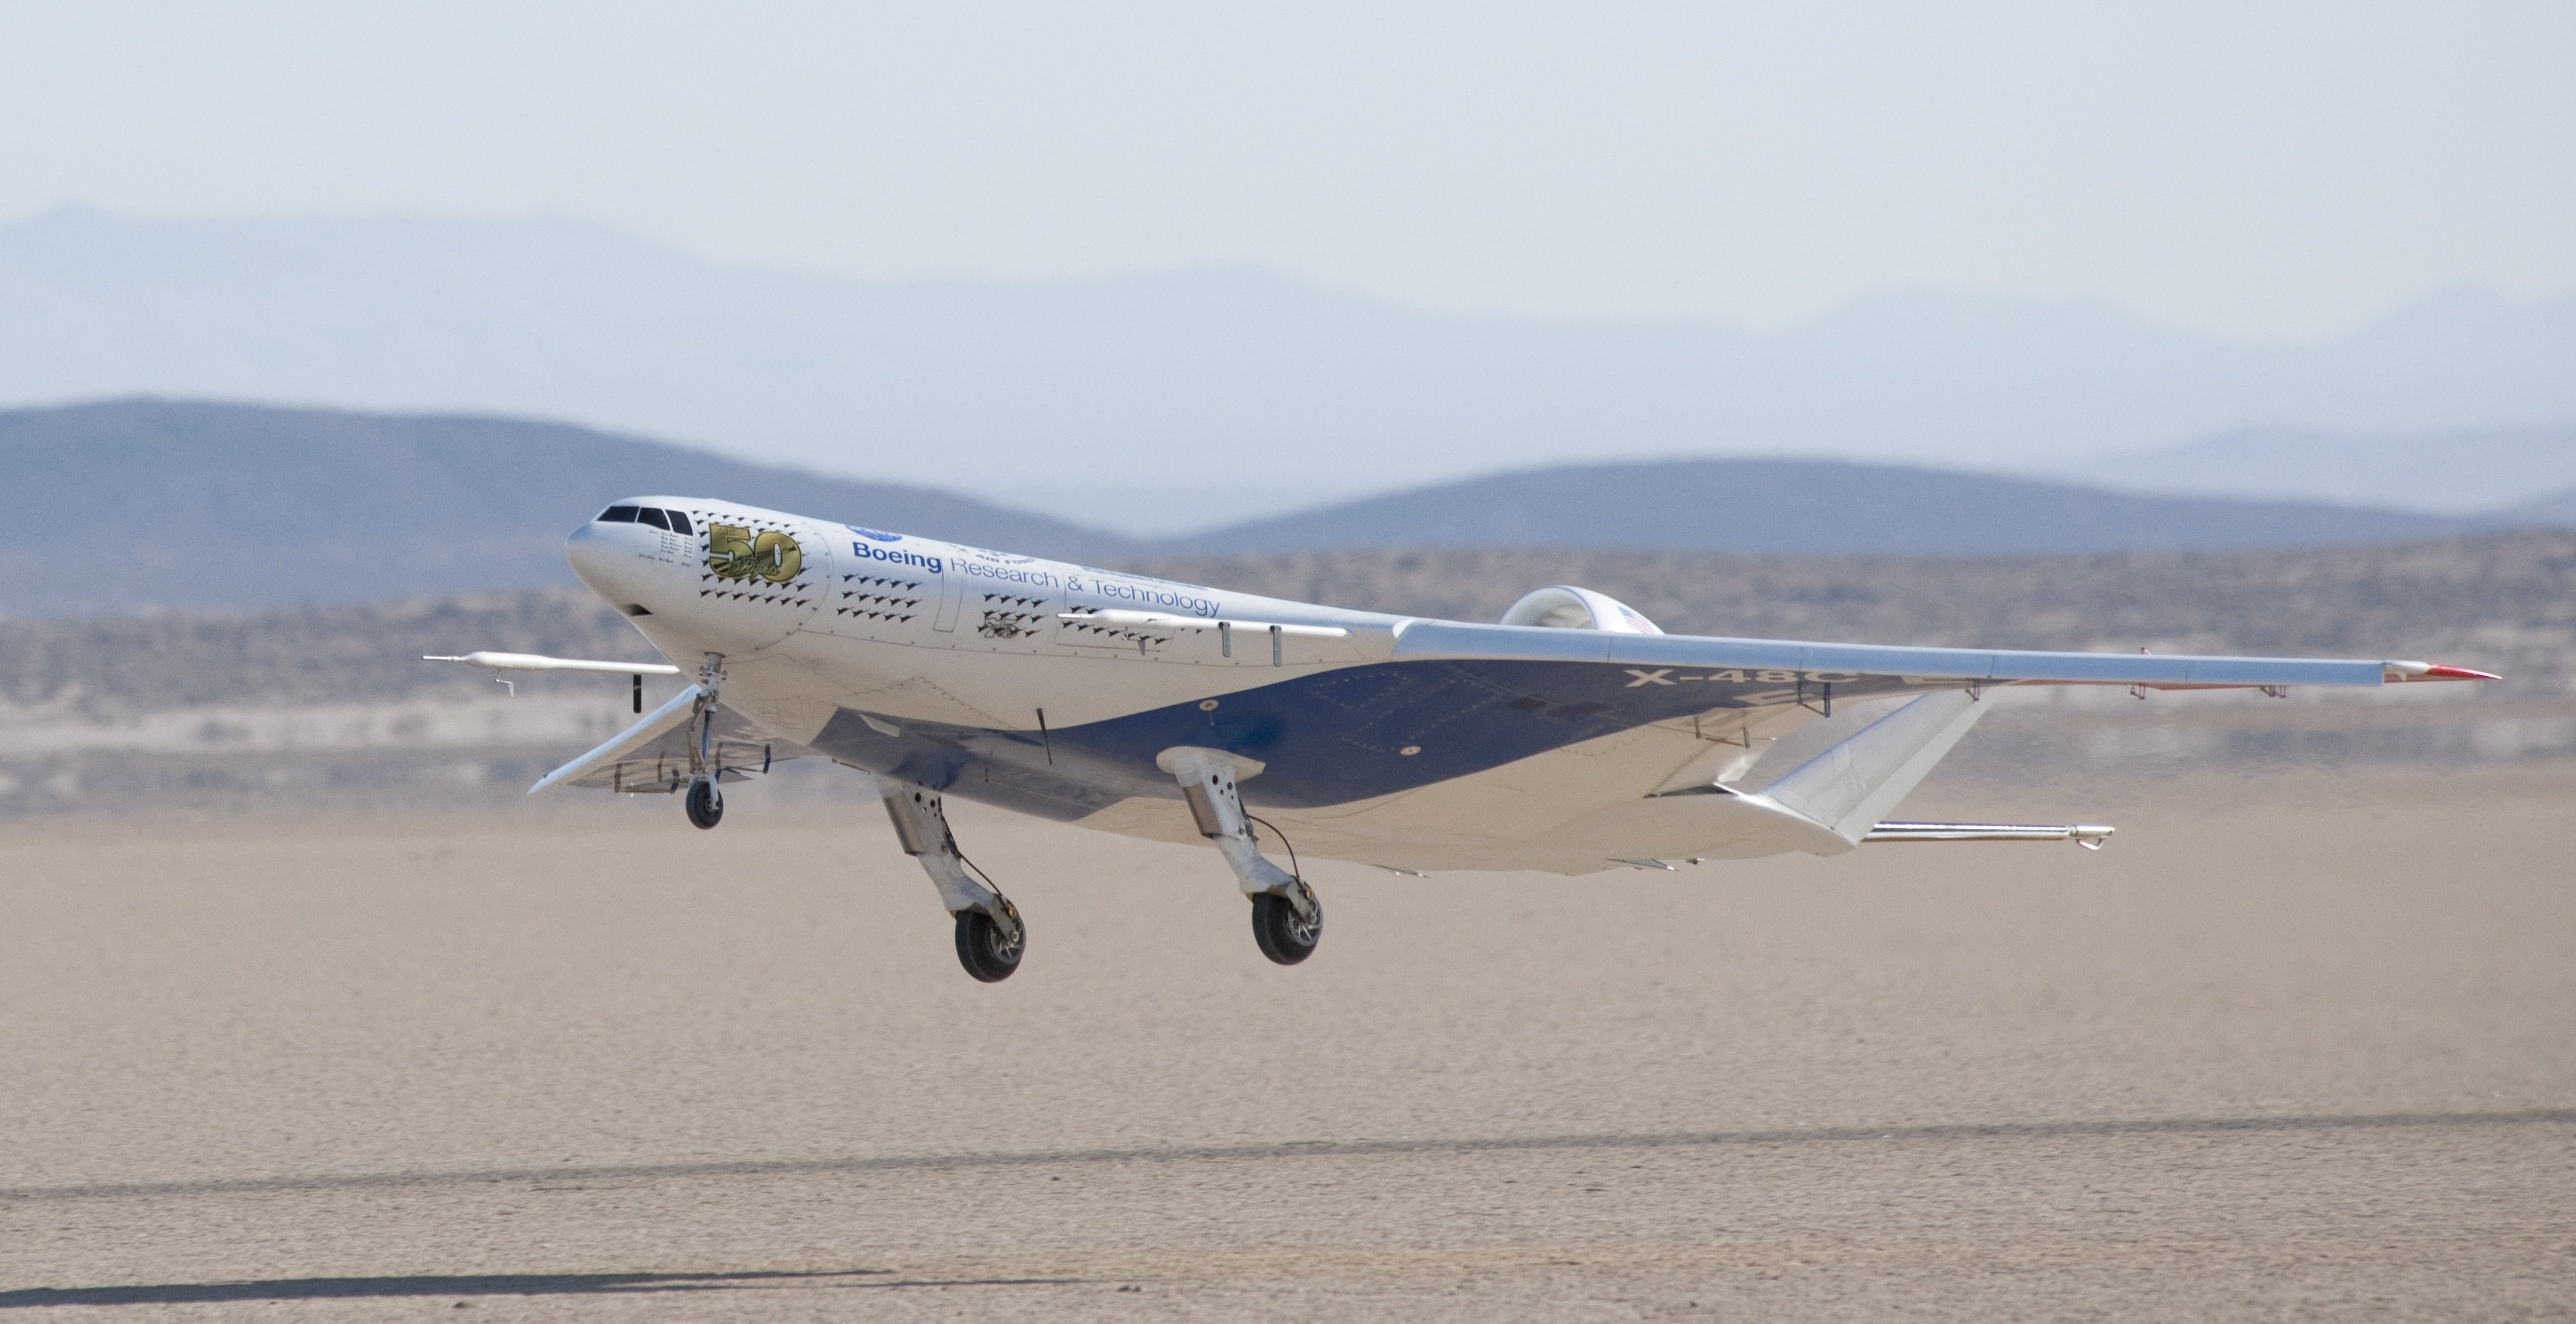 nasa x 48 drone aircraft - photo #8